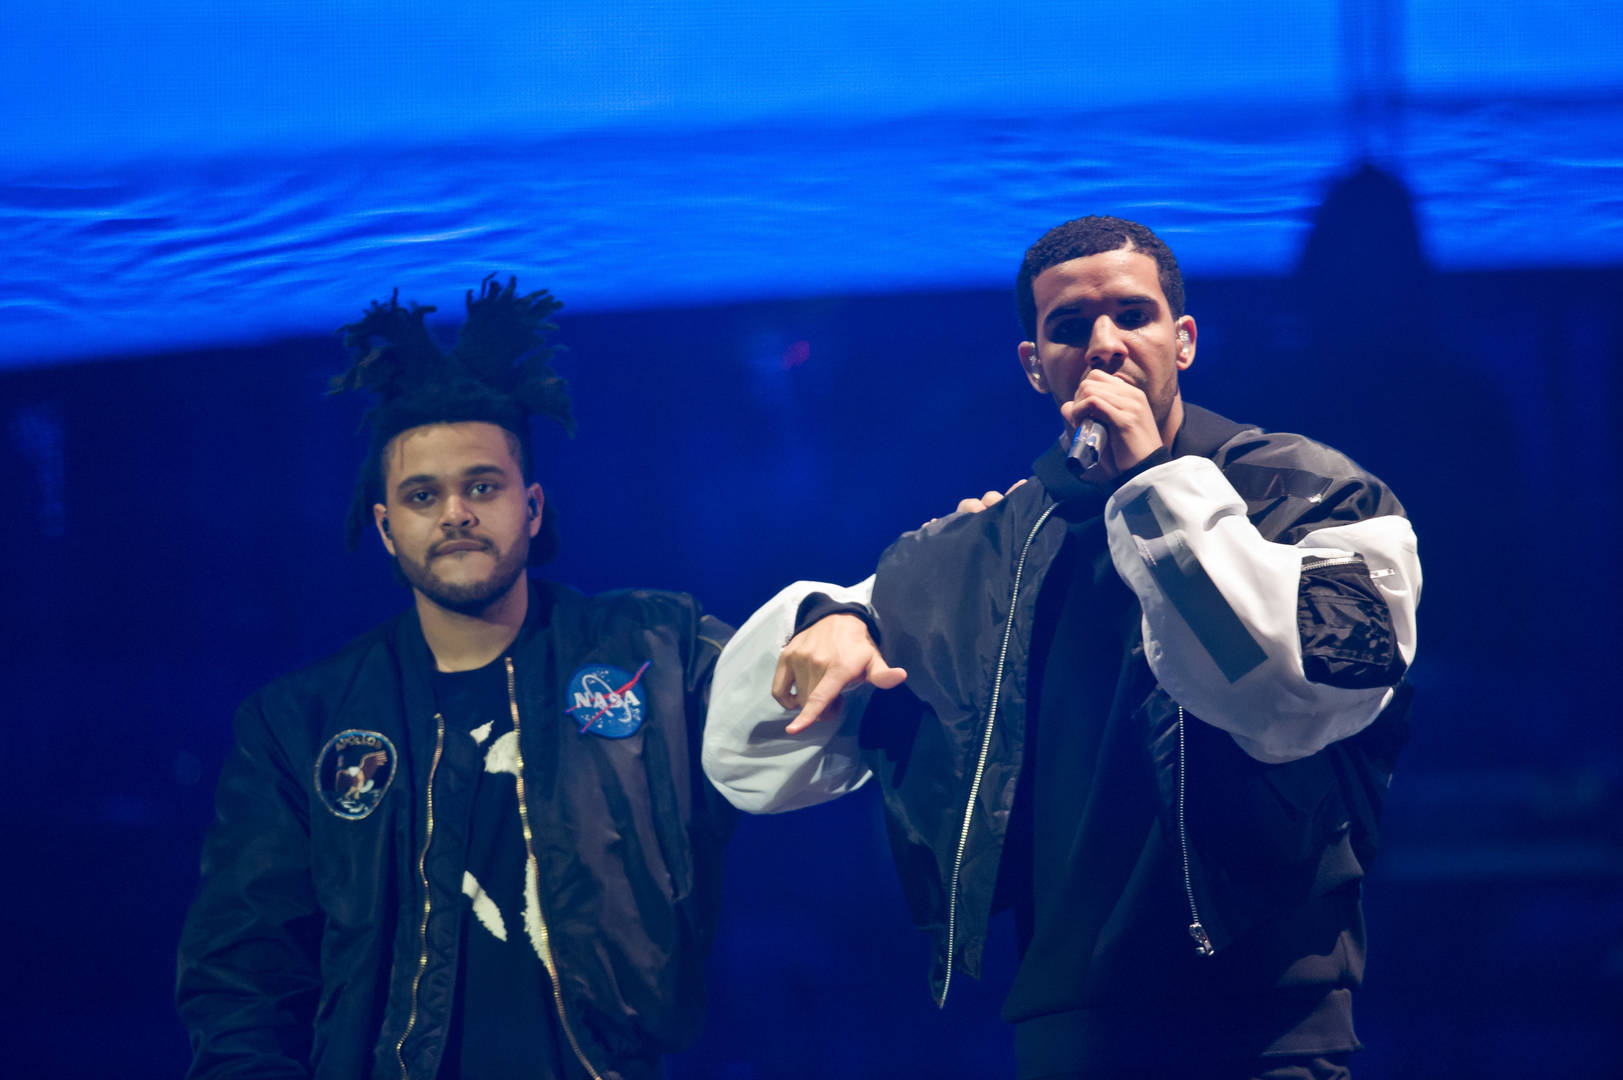 The Weeknd and Drake performs on stage at O2 Arena on March 24, 2014 in London, United Kingdom